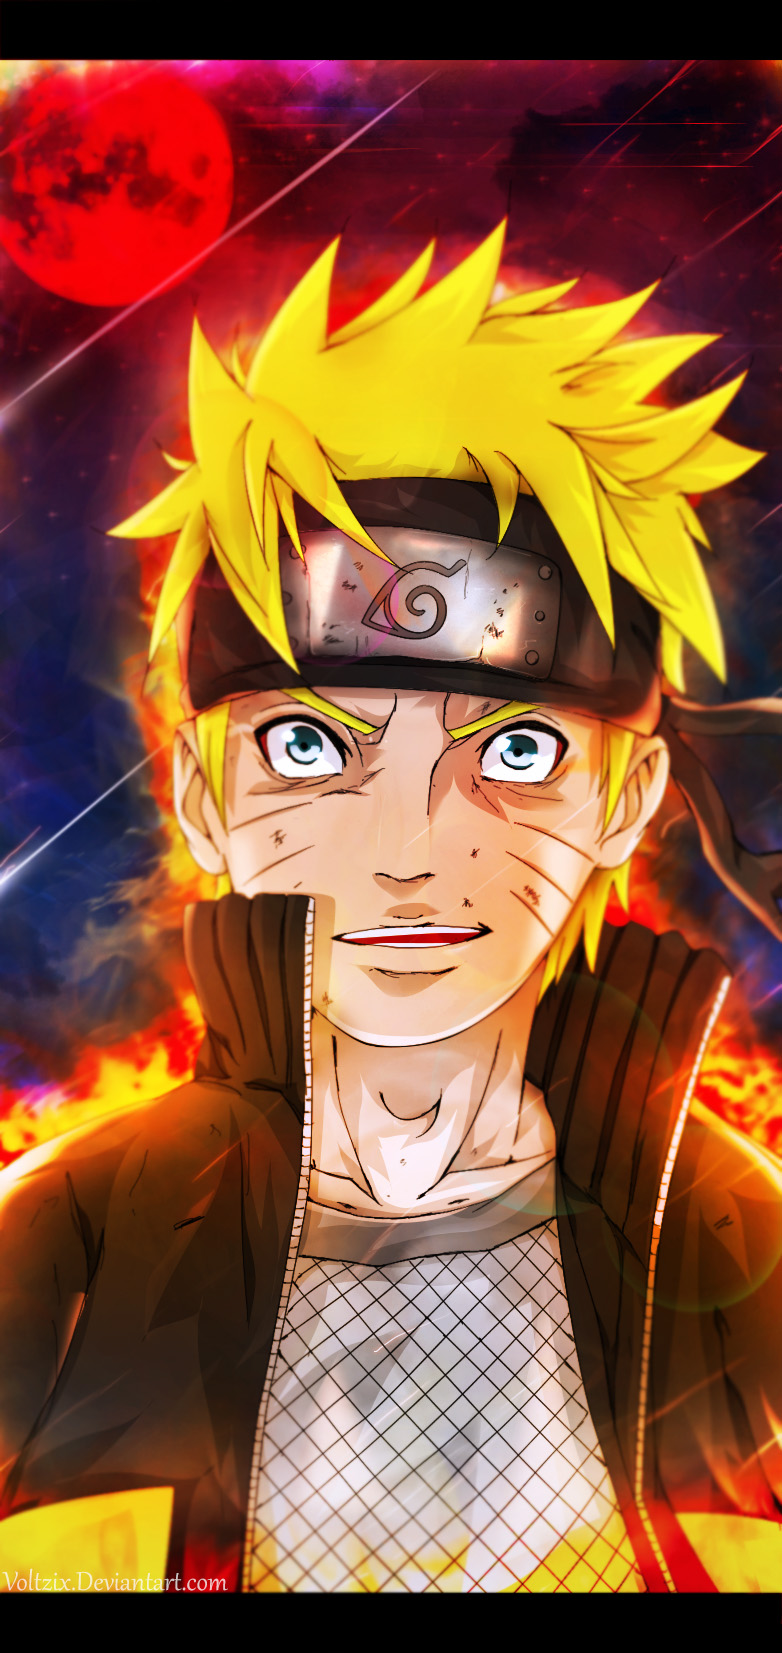 Naruto 693  - I'm Back..! by Voltzix